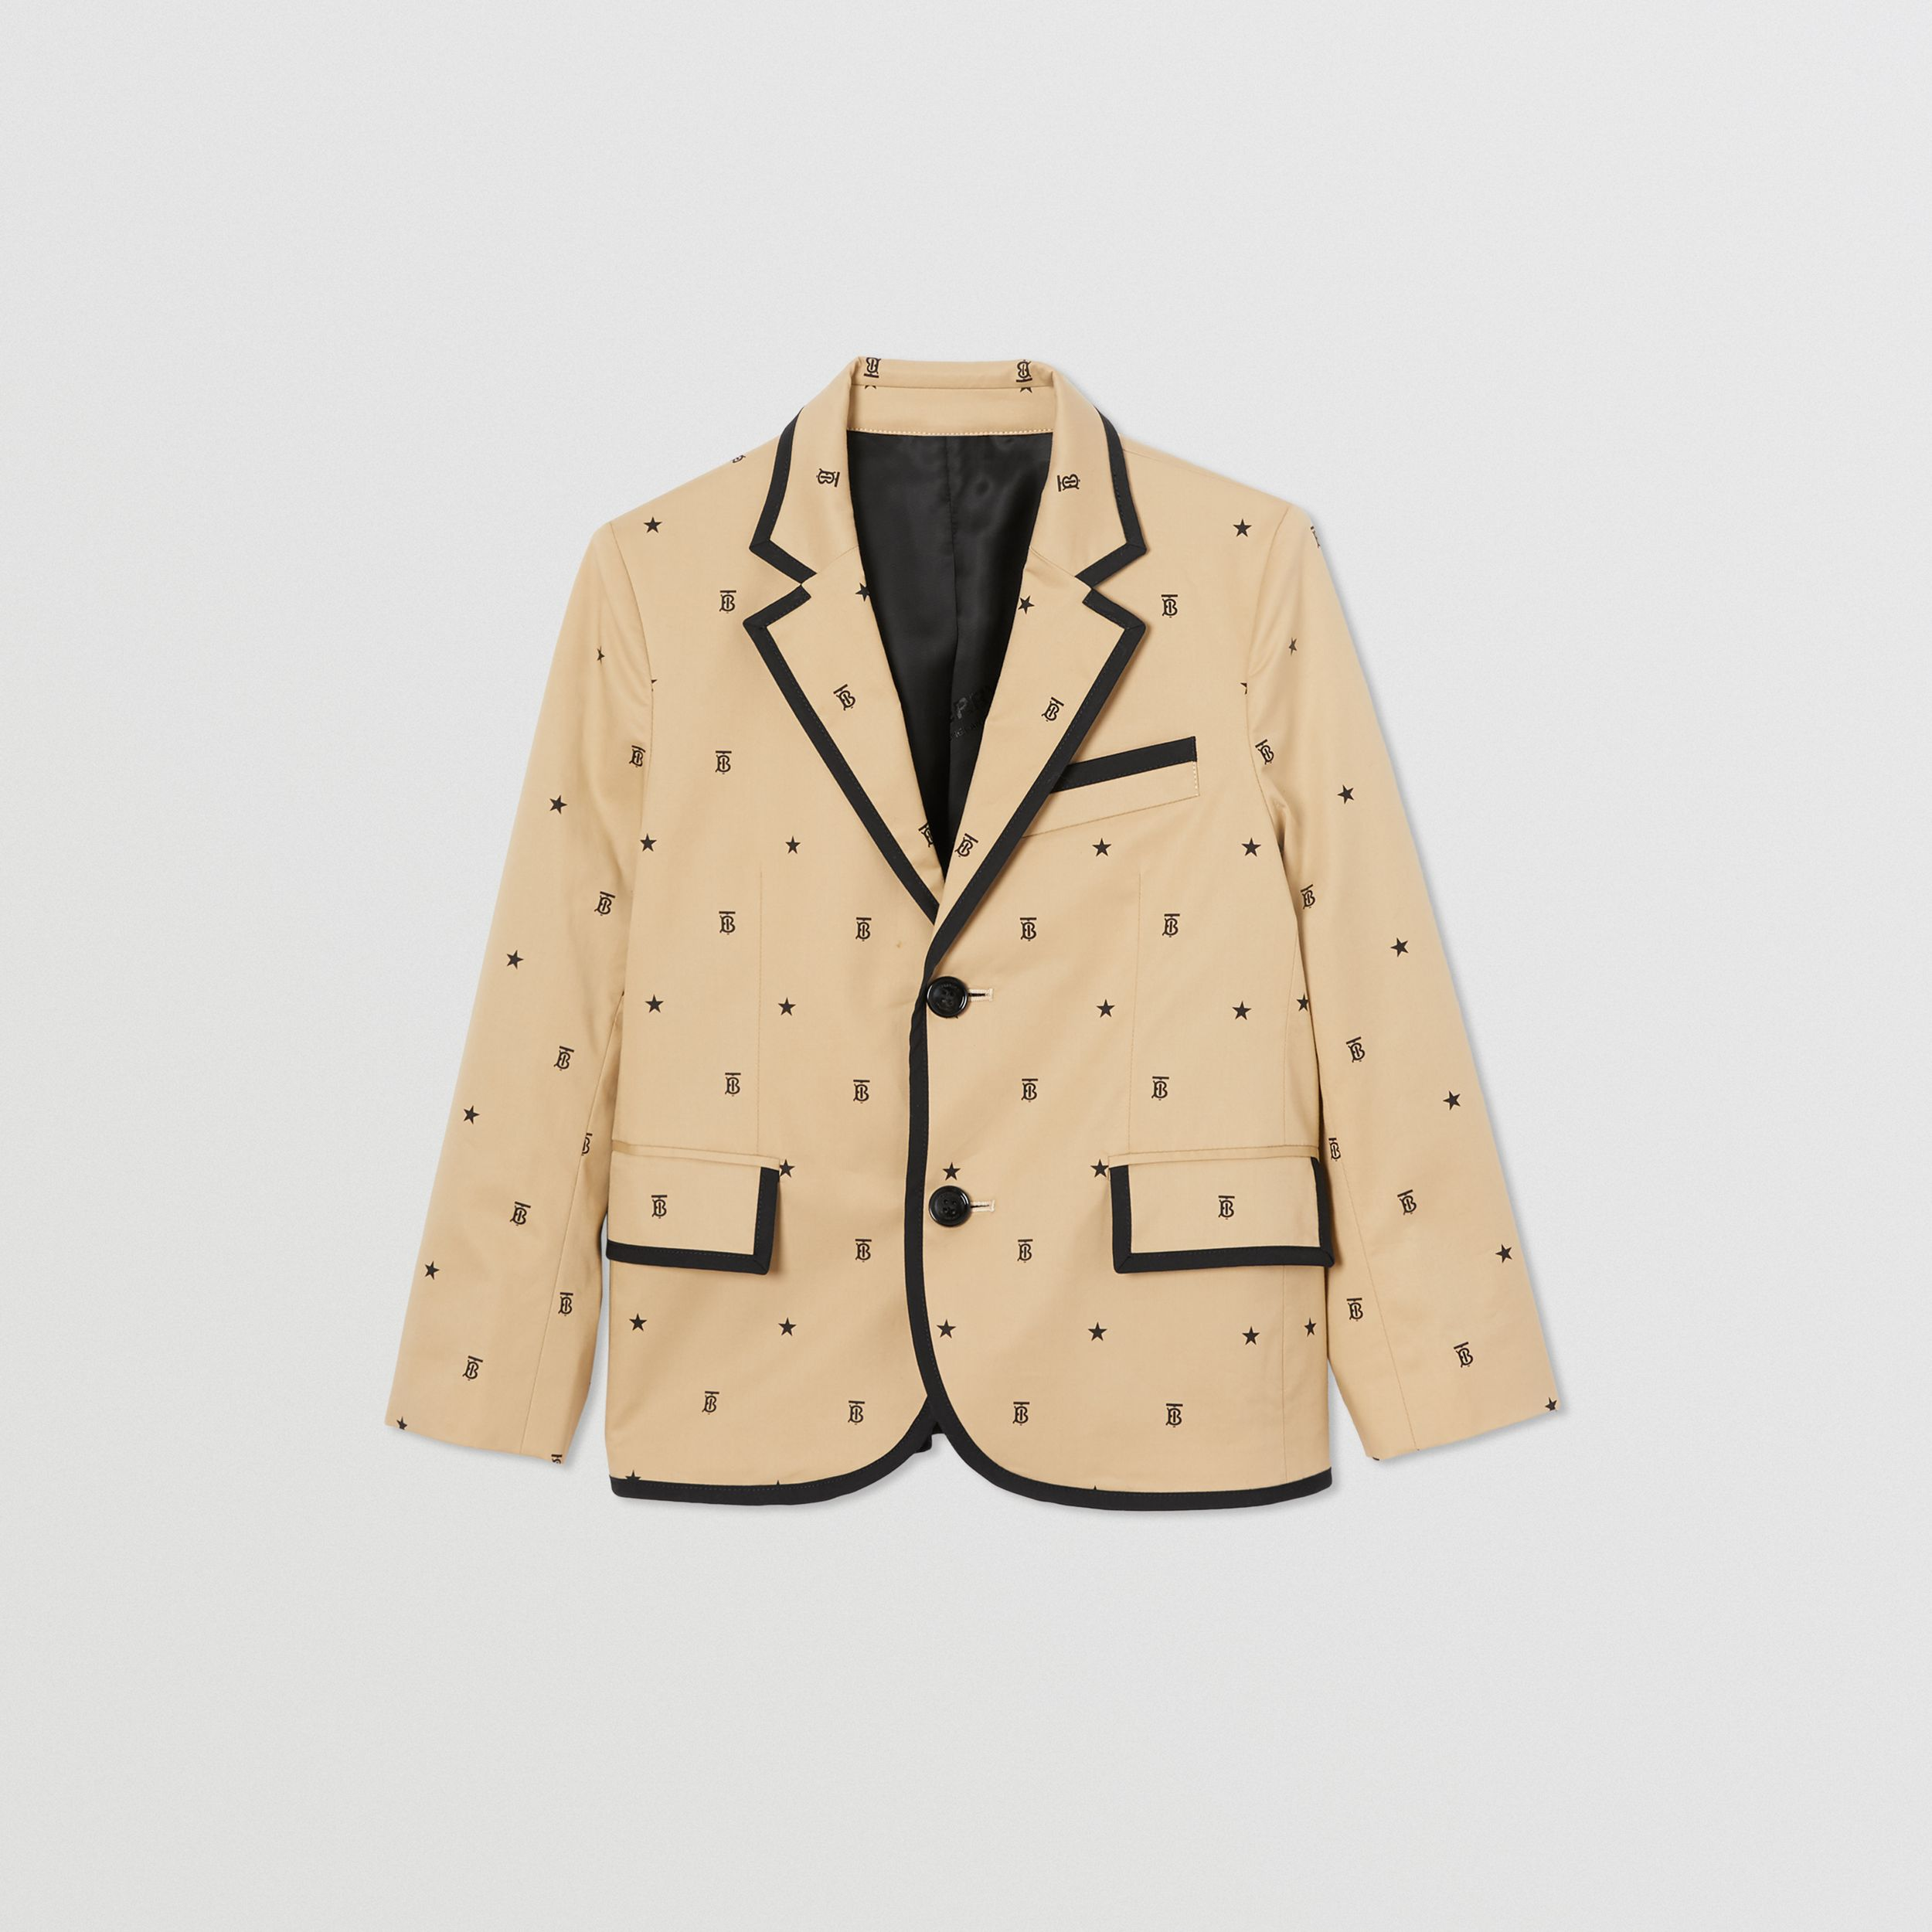 Star and Monogram Motif Stretch Cotton Blazer in Sand | Burberry - 1